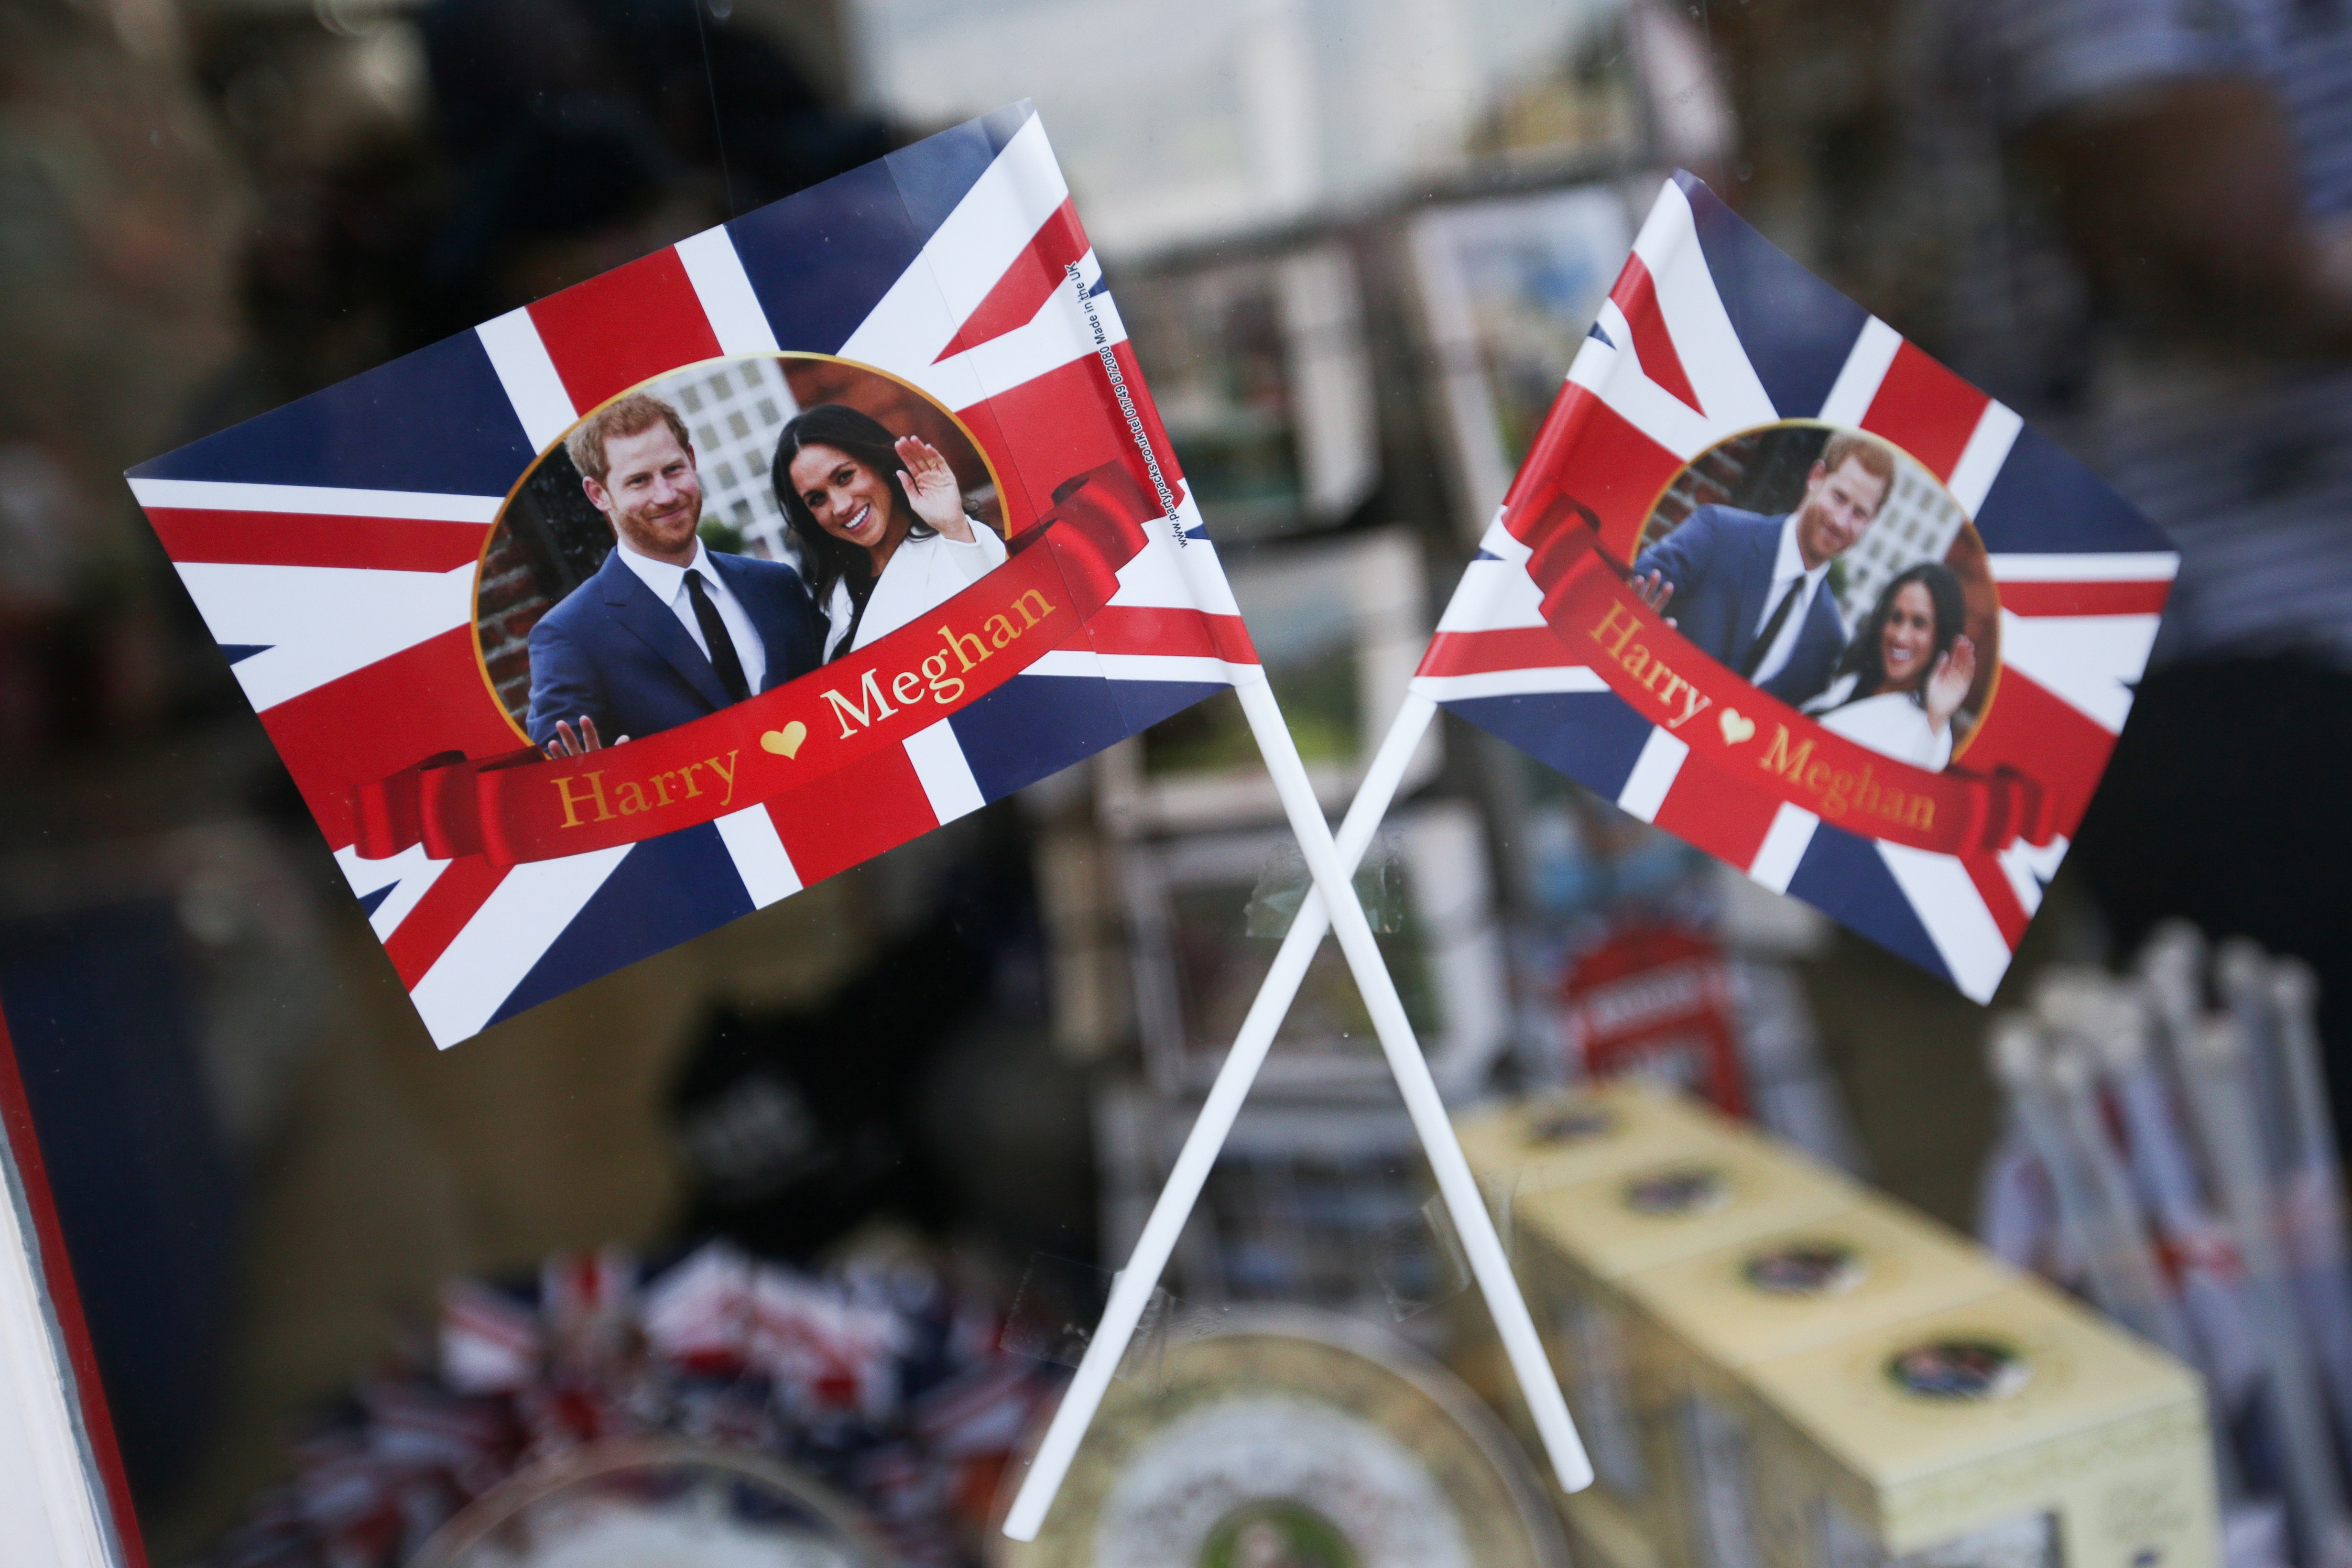 Memorabilia celebrating the the forthcoming wedding between Britain's Prince Harry and his US fiancee Meghan Markle are pictured for sale in a gift shop in Windsor, west of London on May 8, 2018. - Britain's Prince Harry and US actress Meghan Markle will marry on May 19 at St George's Chapel in Windsor Castle. (Photo by Daniel LEAL-OLIVAS / AFP)        (Photo credit should read DANIEL LEAL-OLIVAS/AFP/Getty Images)